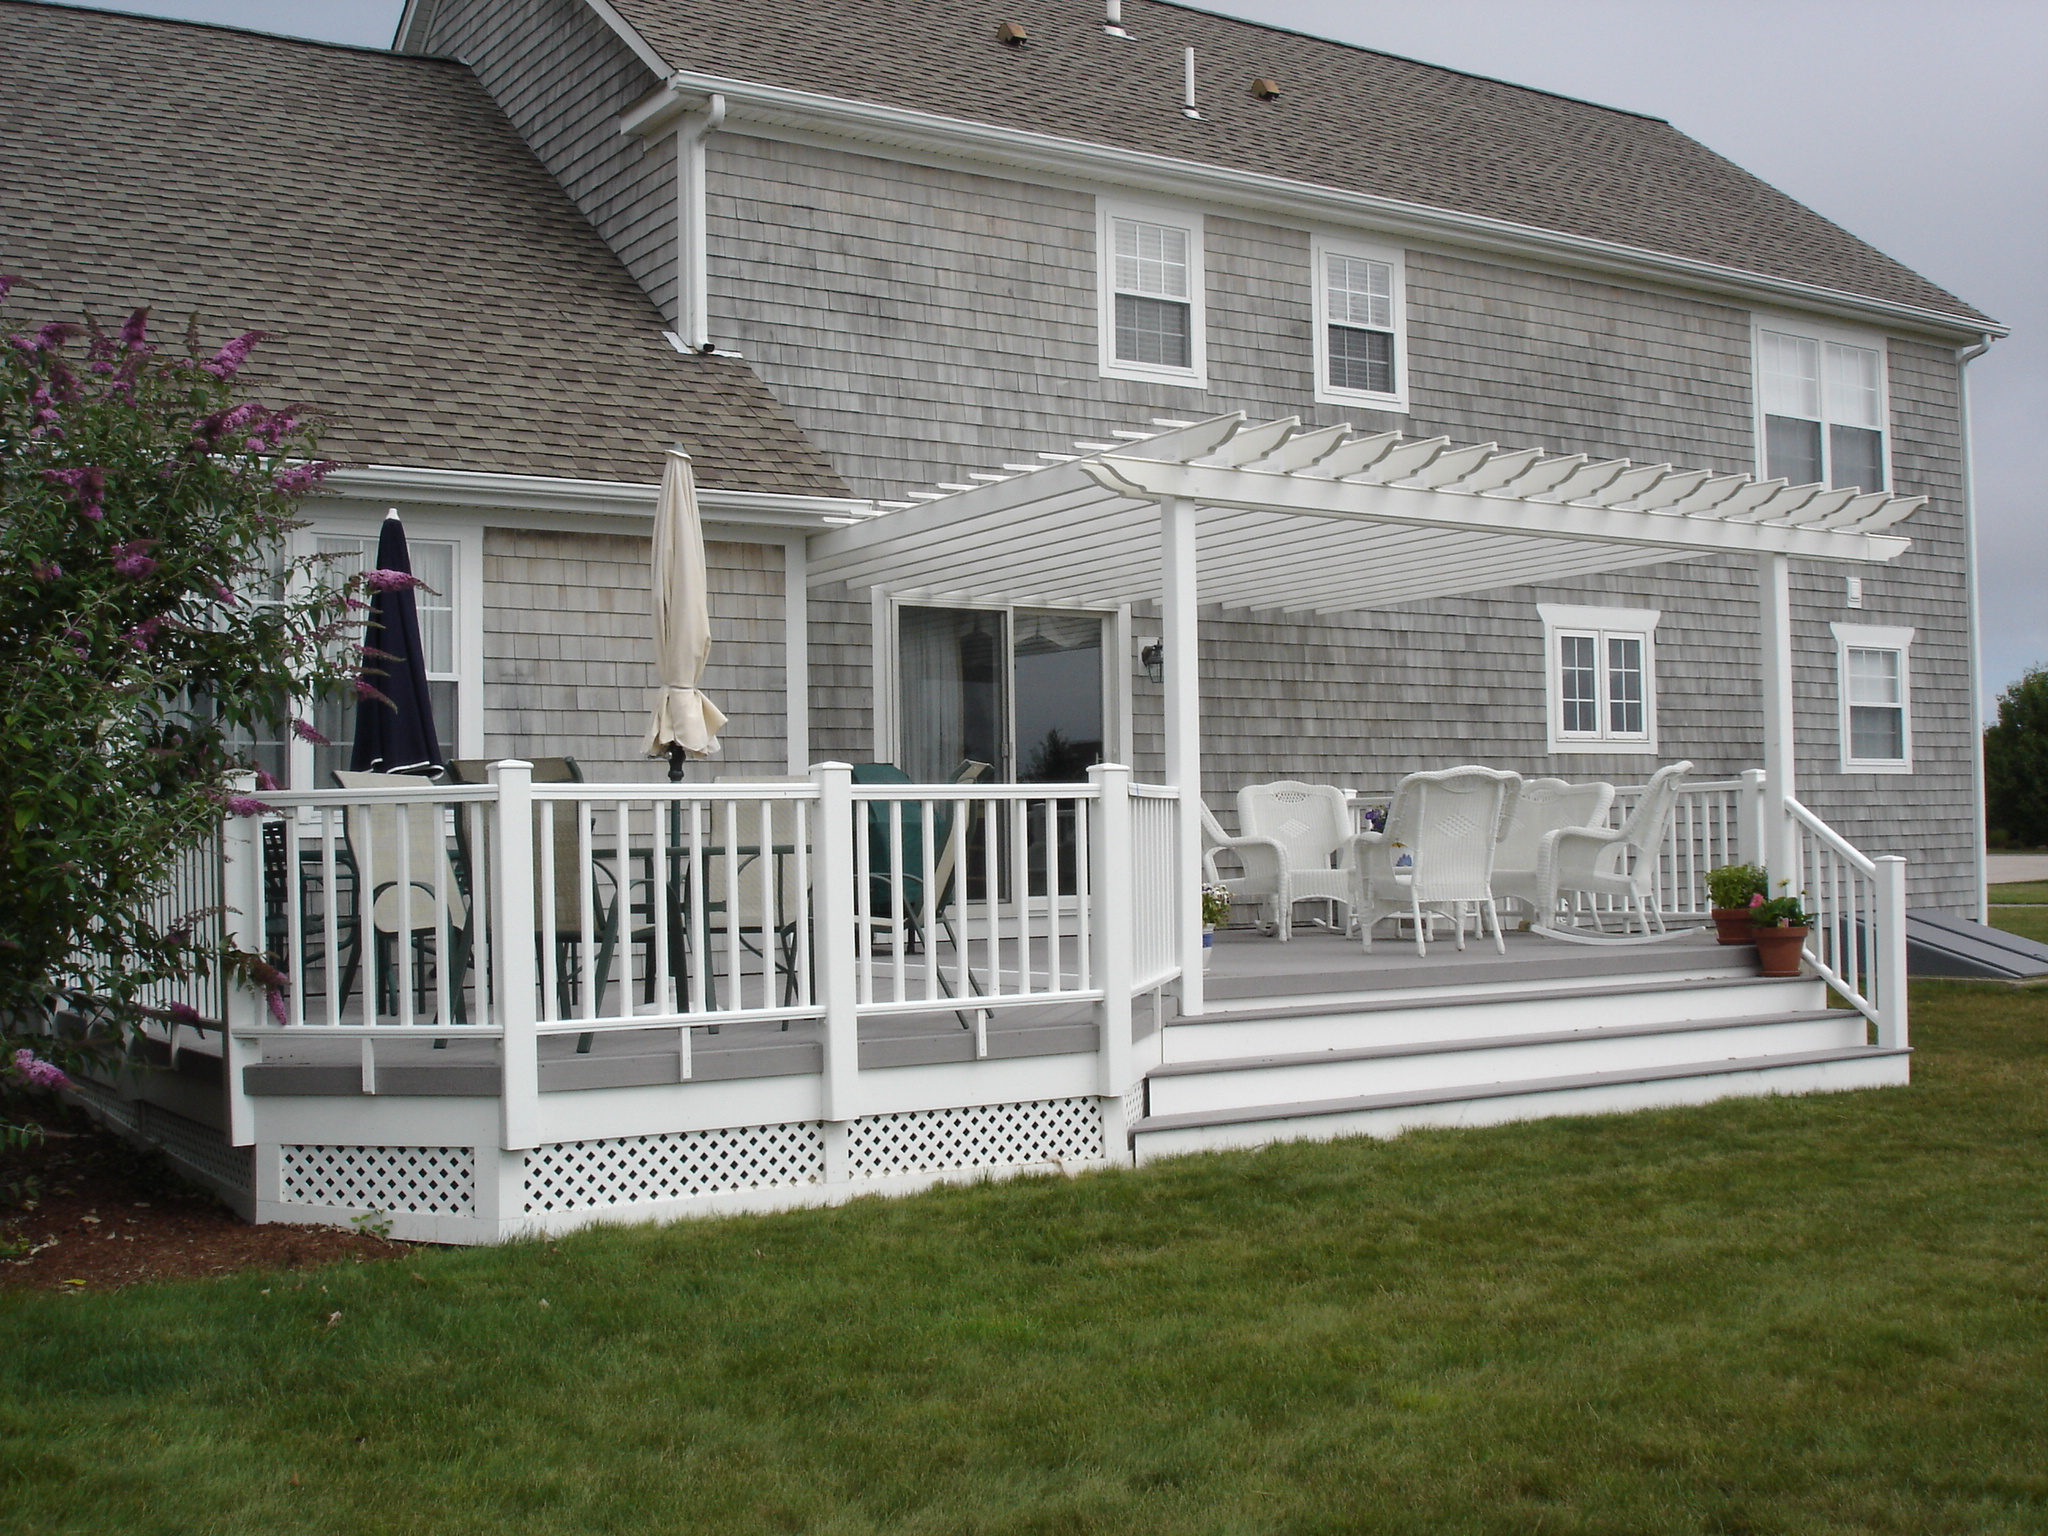 St louis mo pergola deck designs by archadeck st for Deck designer